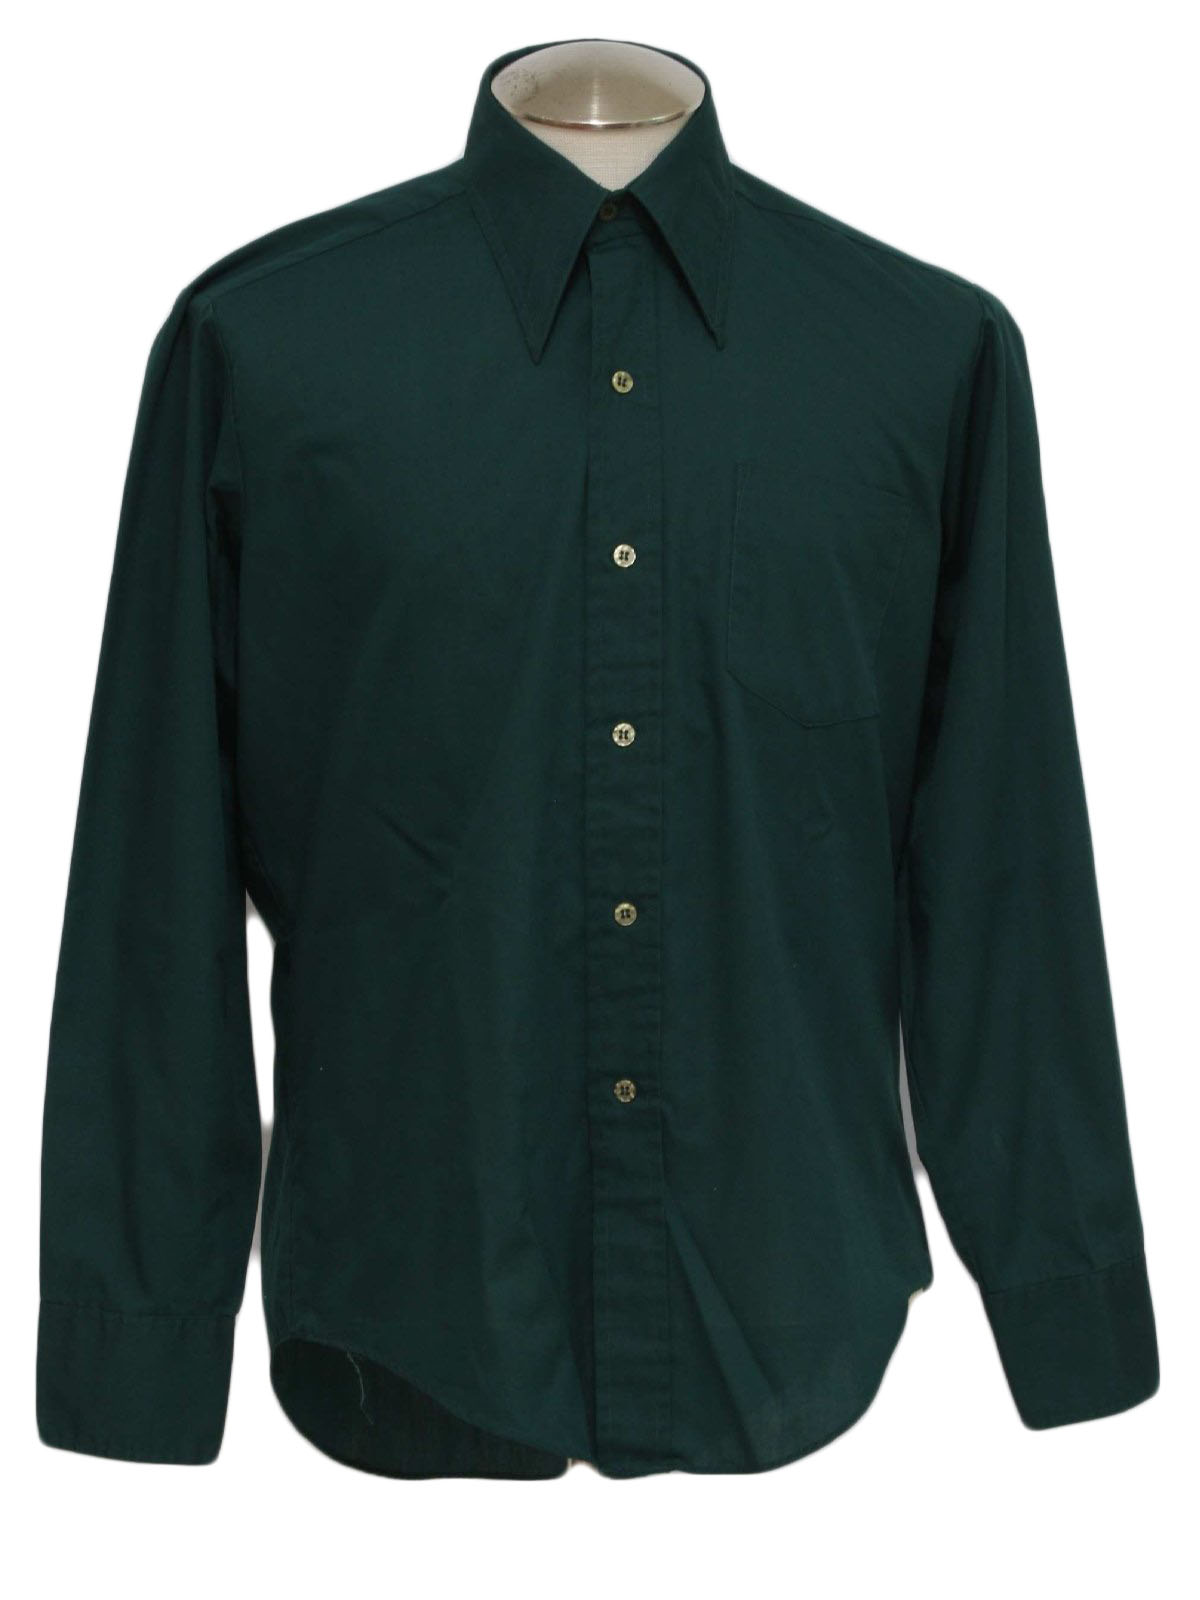 Lulus Exclusive! It's easy to dress for success when you have the Lulus Good Luck Charm Dark Green Short Sleeve Button-Up Top in your closet! This classic collared top has a full covered button and loop placket running the length of its breezy, woven fabric bodice/5(5).